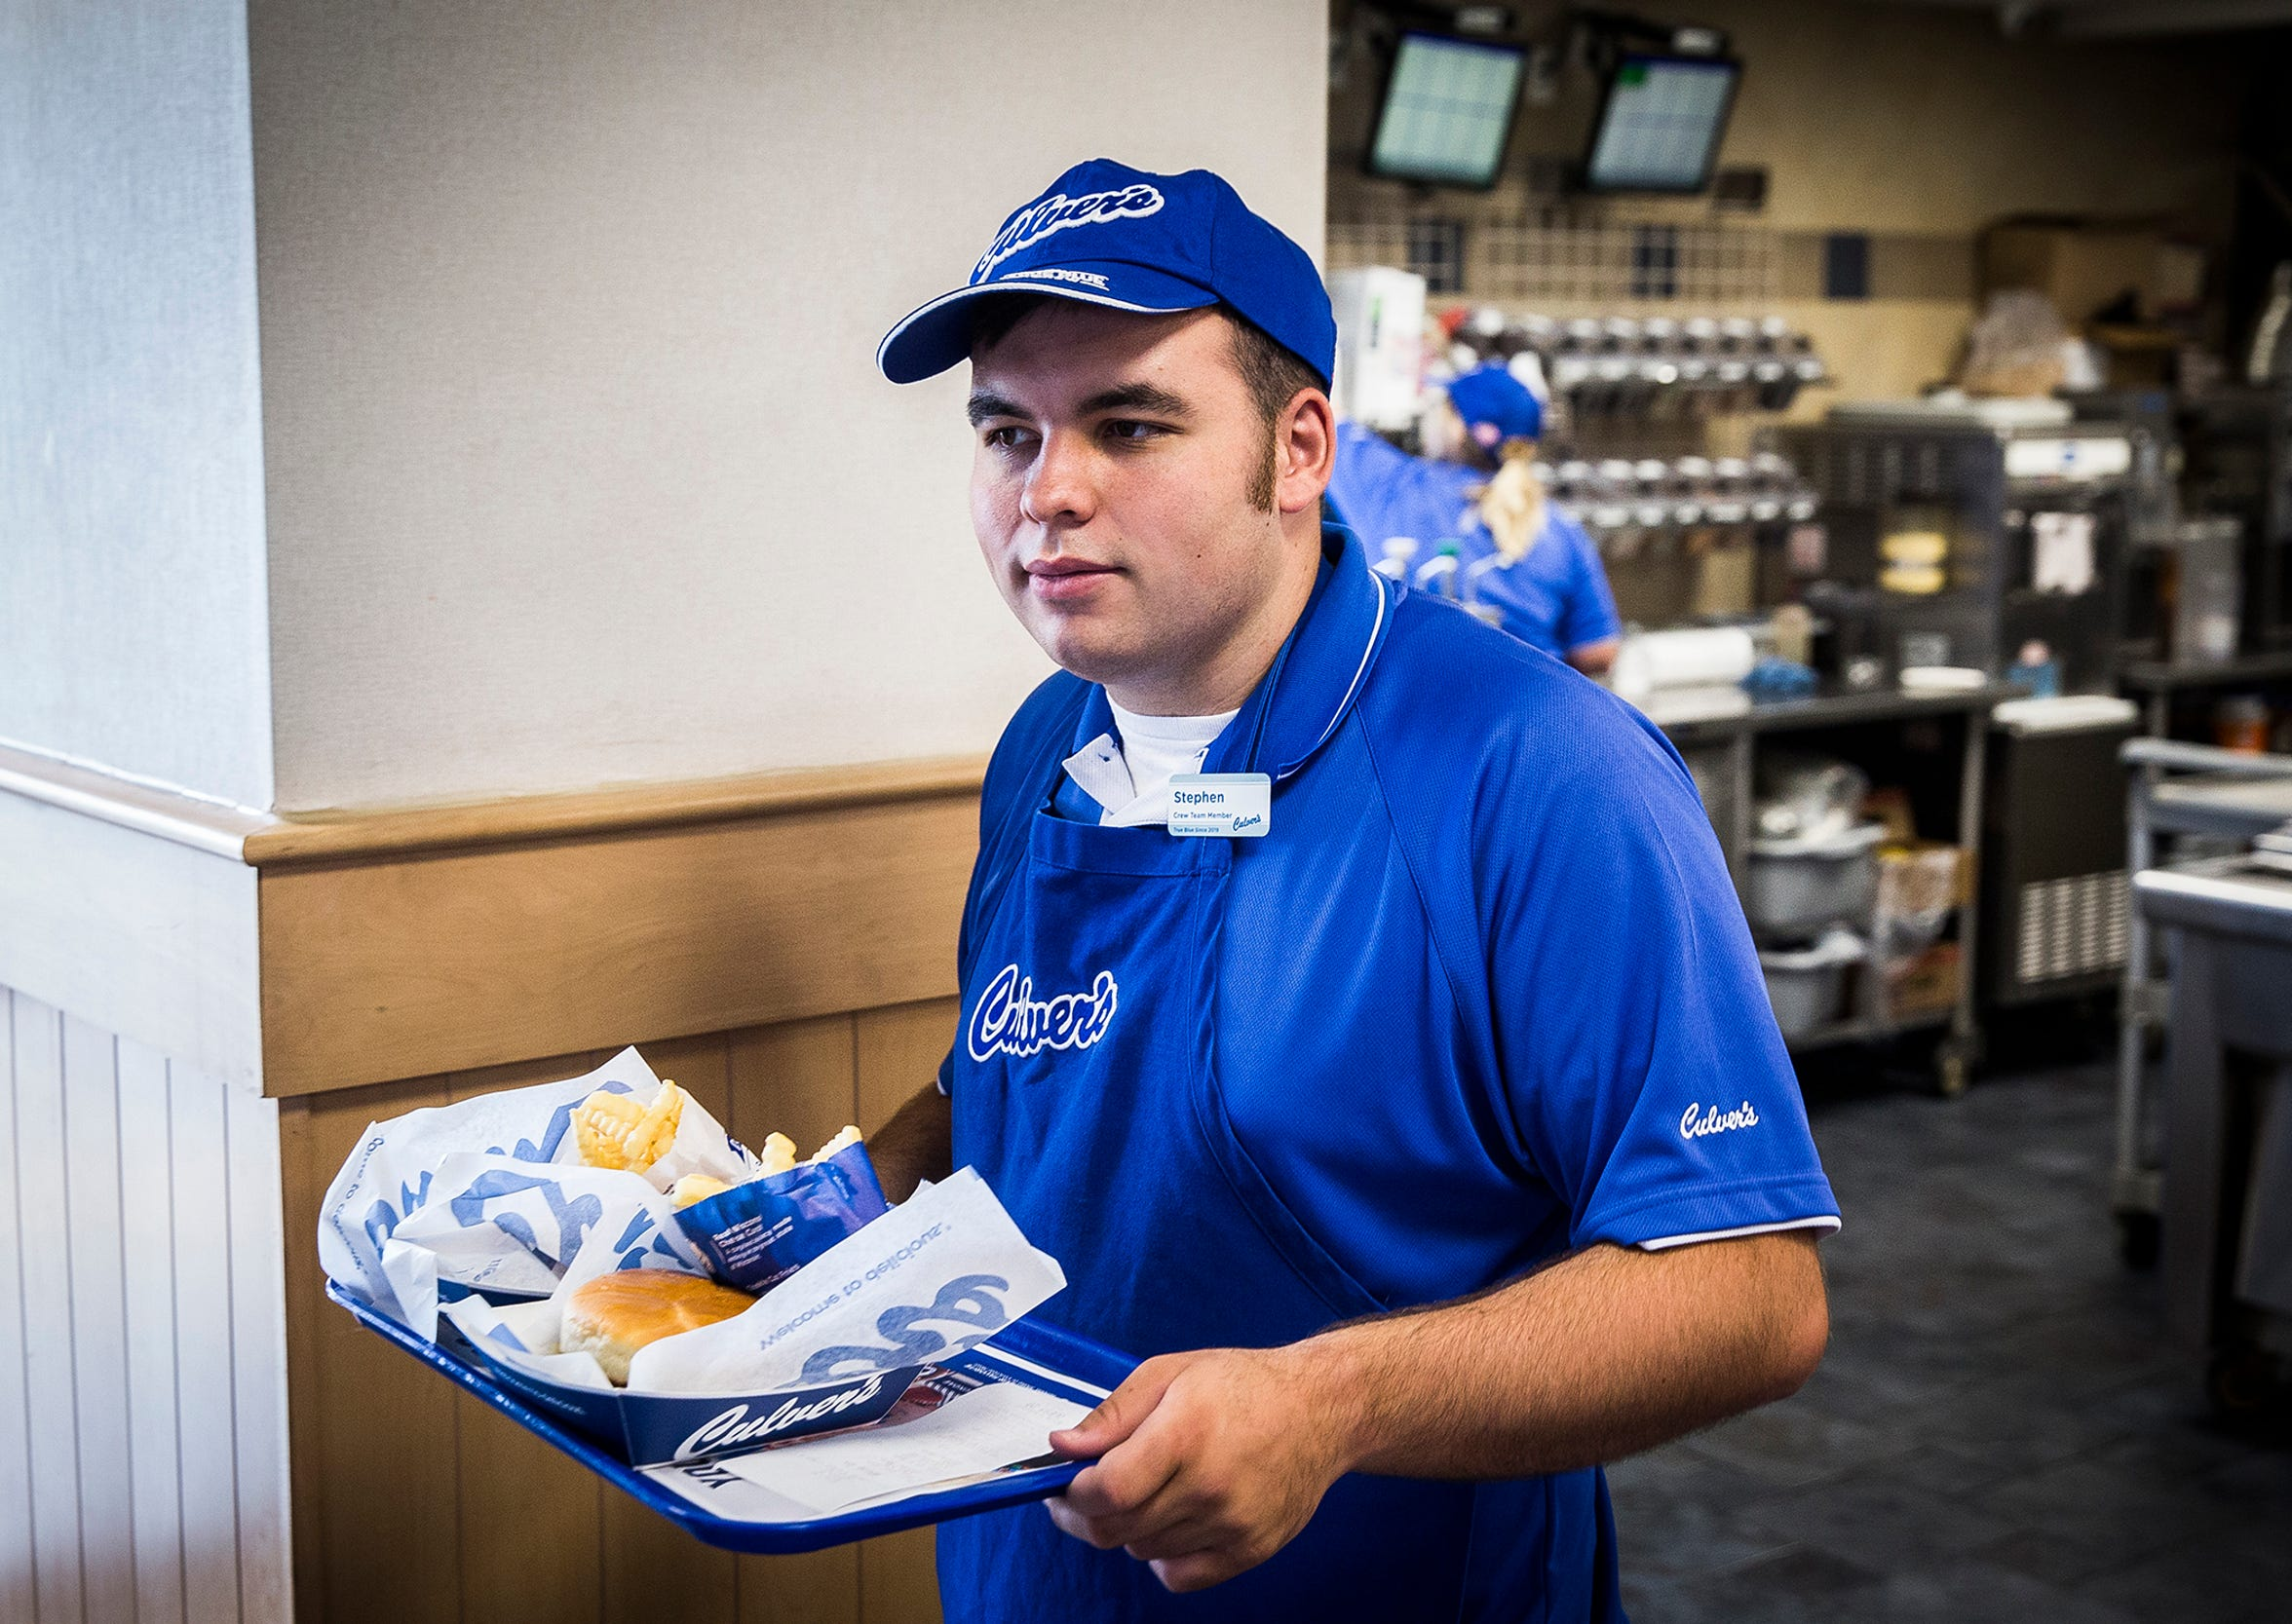 Stephen Drake brings food to customers at Culver's on McGalliard Road. Drake completed training at the Erskine Green Institute before finding placement in several service industry jobs.